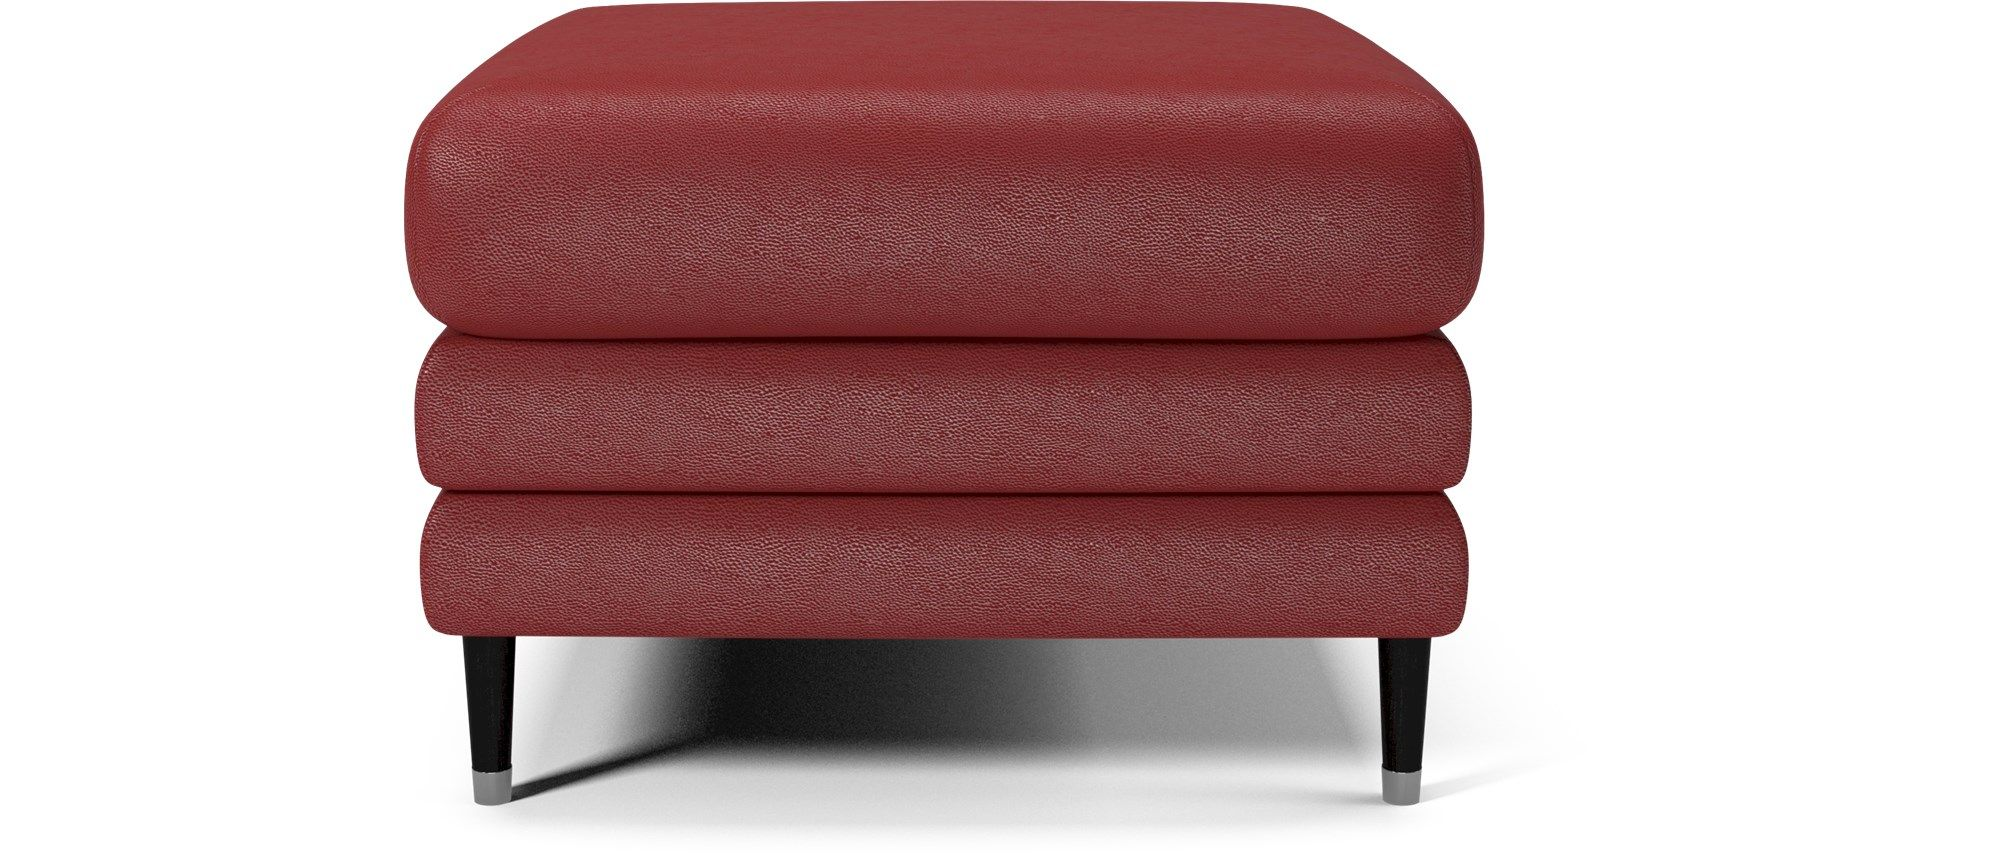 Steeped in modernity, this contemporary classic with slim arms and crafted legs, is as timeless as it is stylish. Whether you're slouching, lounging, posing, or perching, you will look amazing doing it here. Available with full width lounge or narrow high back cushions, and as a sofa bed should the need arise. Customize it to your hearts content in endless seating combinations, fabrics and luxurious leathers